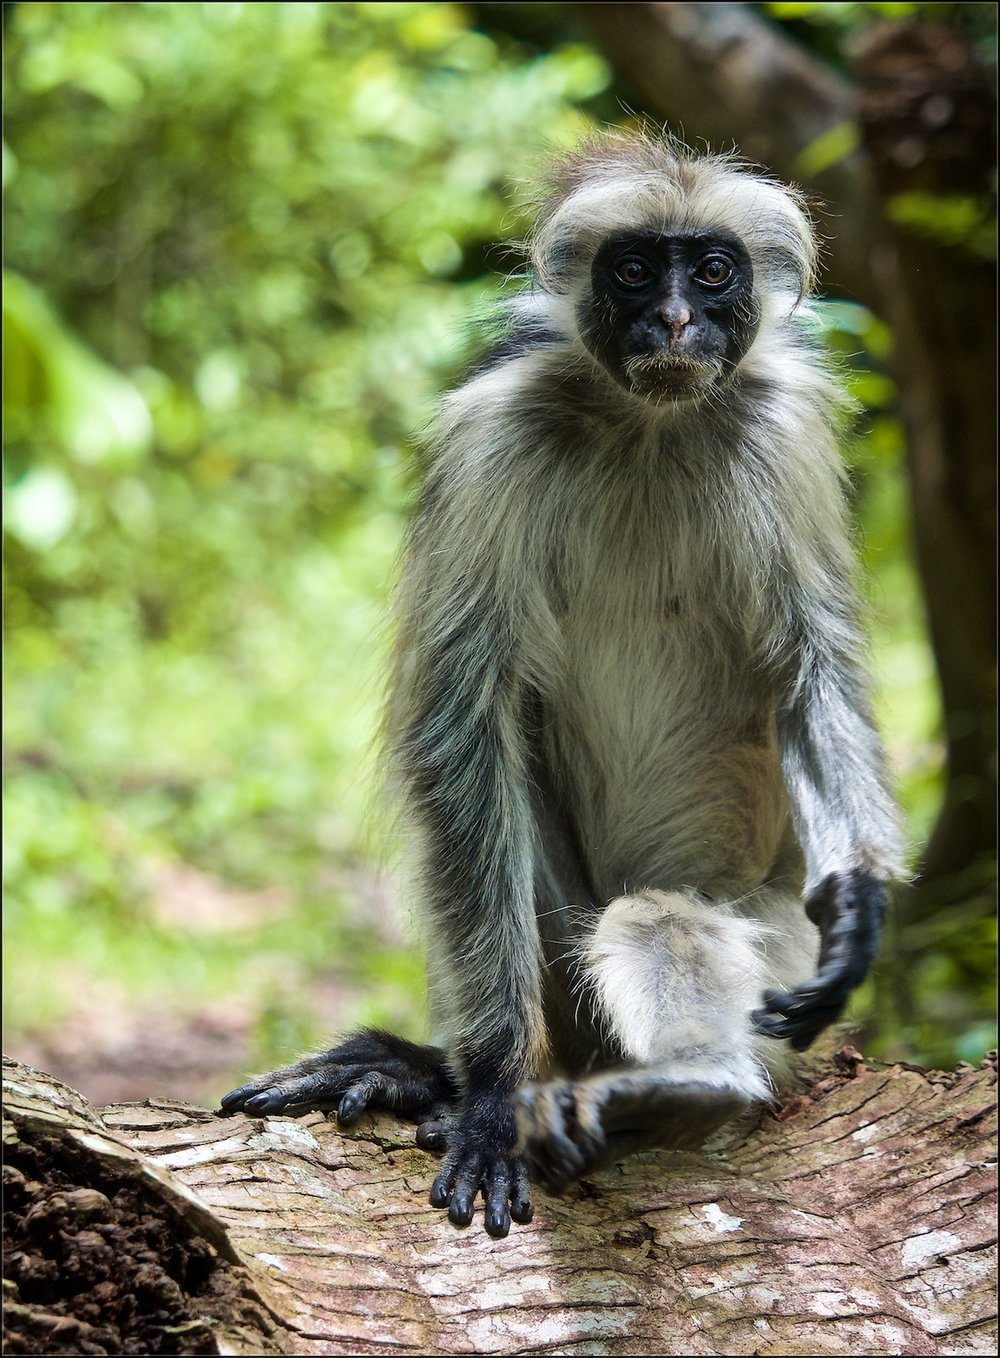 The Red Colobus